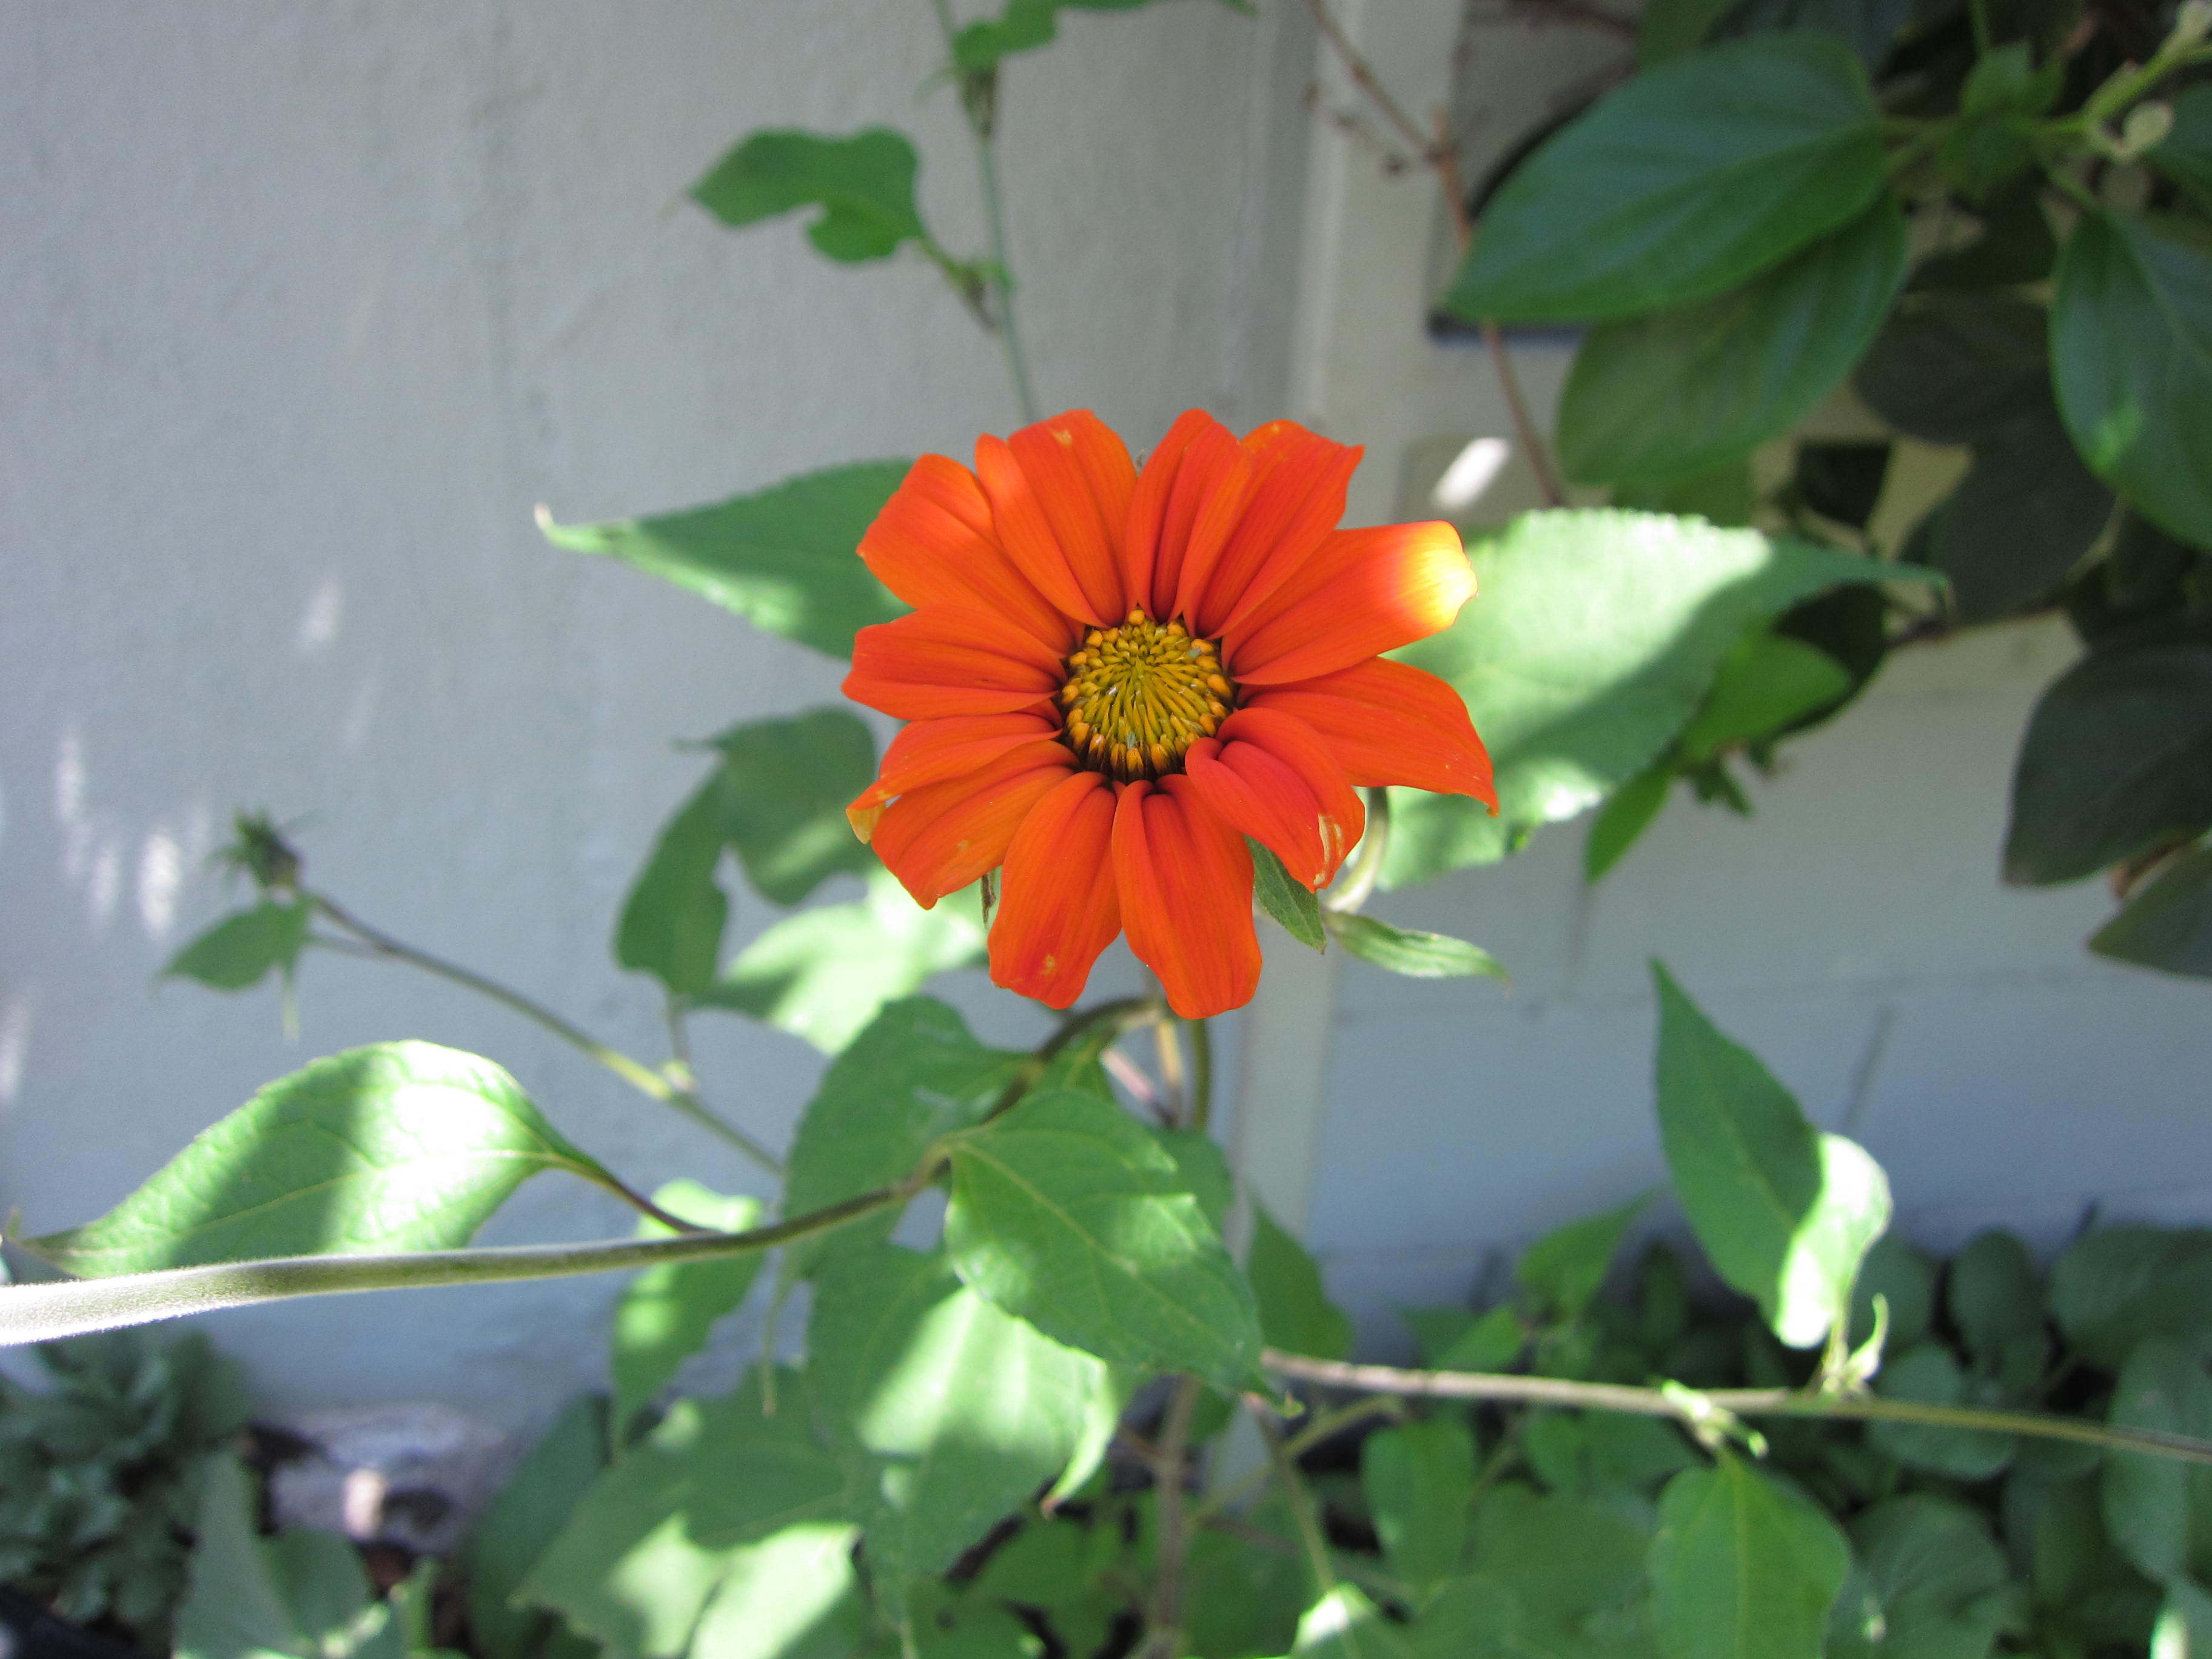 Trying Tithonia (Mexican sunflower) for the butterflies this year. Success!